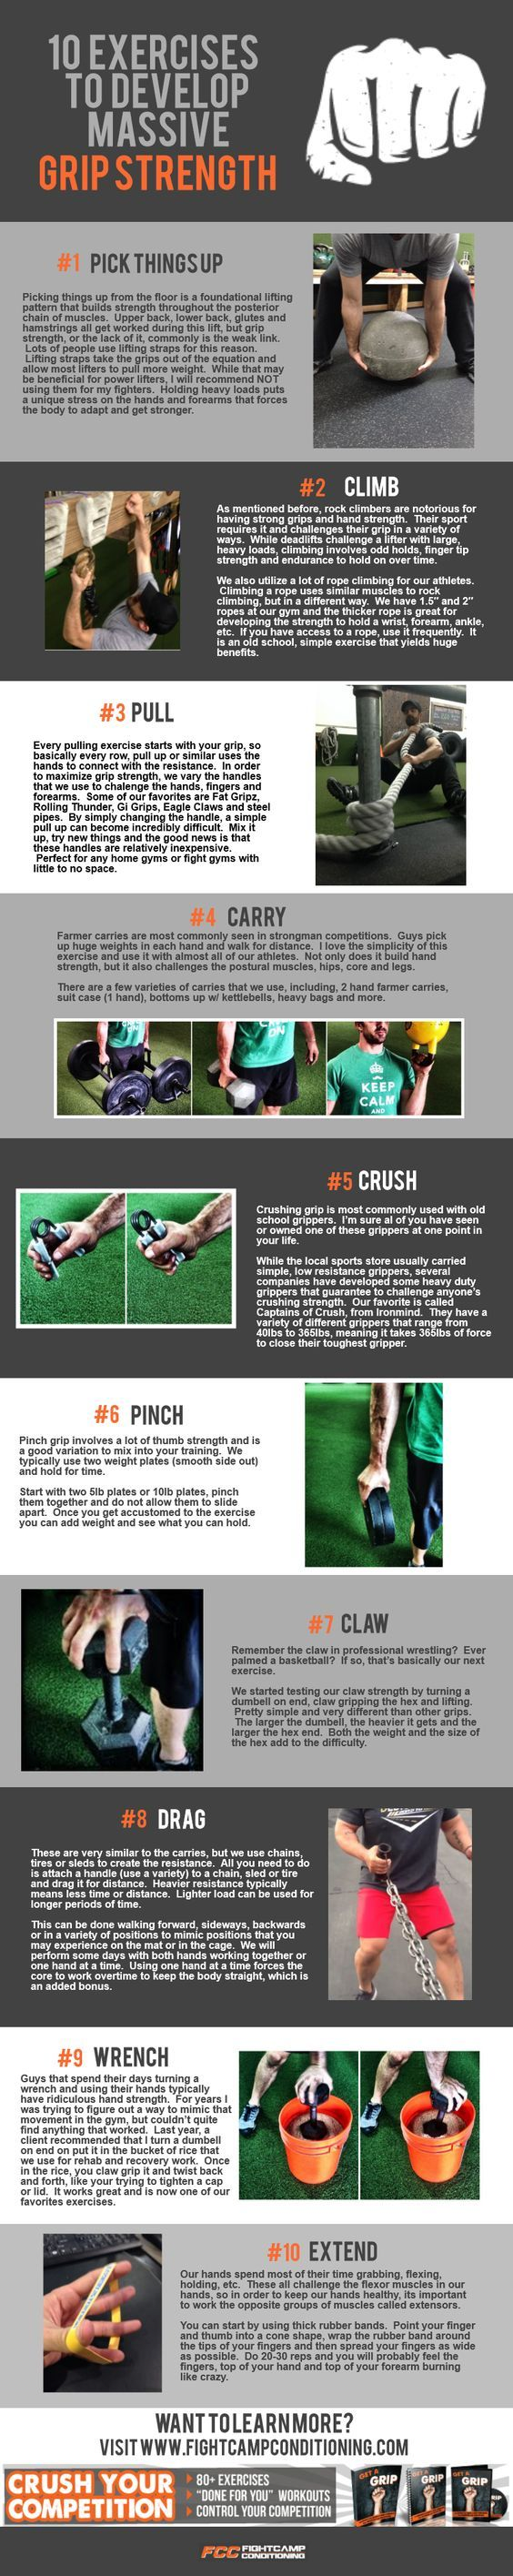 10 Exercises to Develop Massive Grip Strength